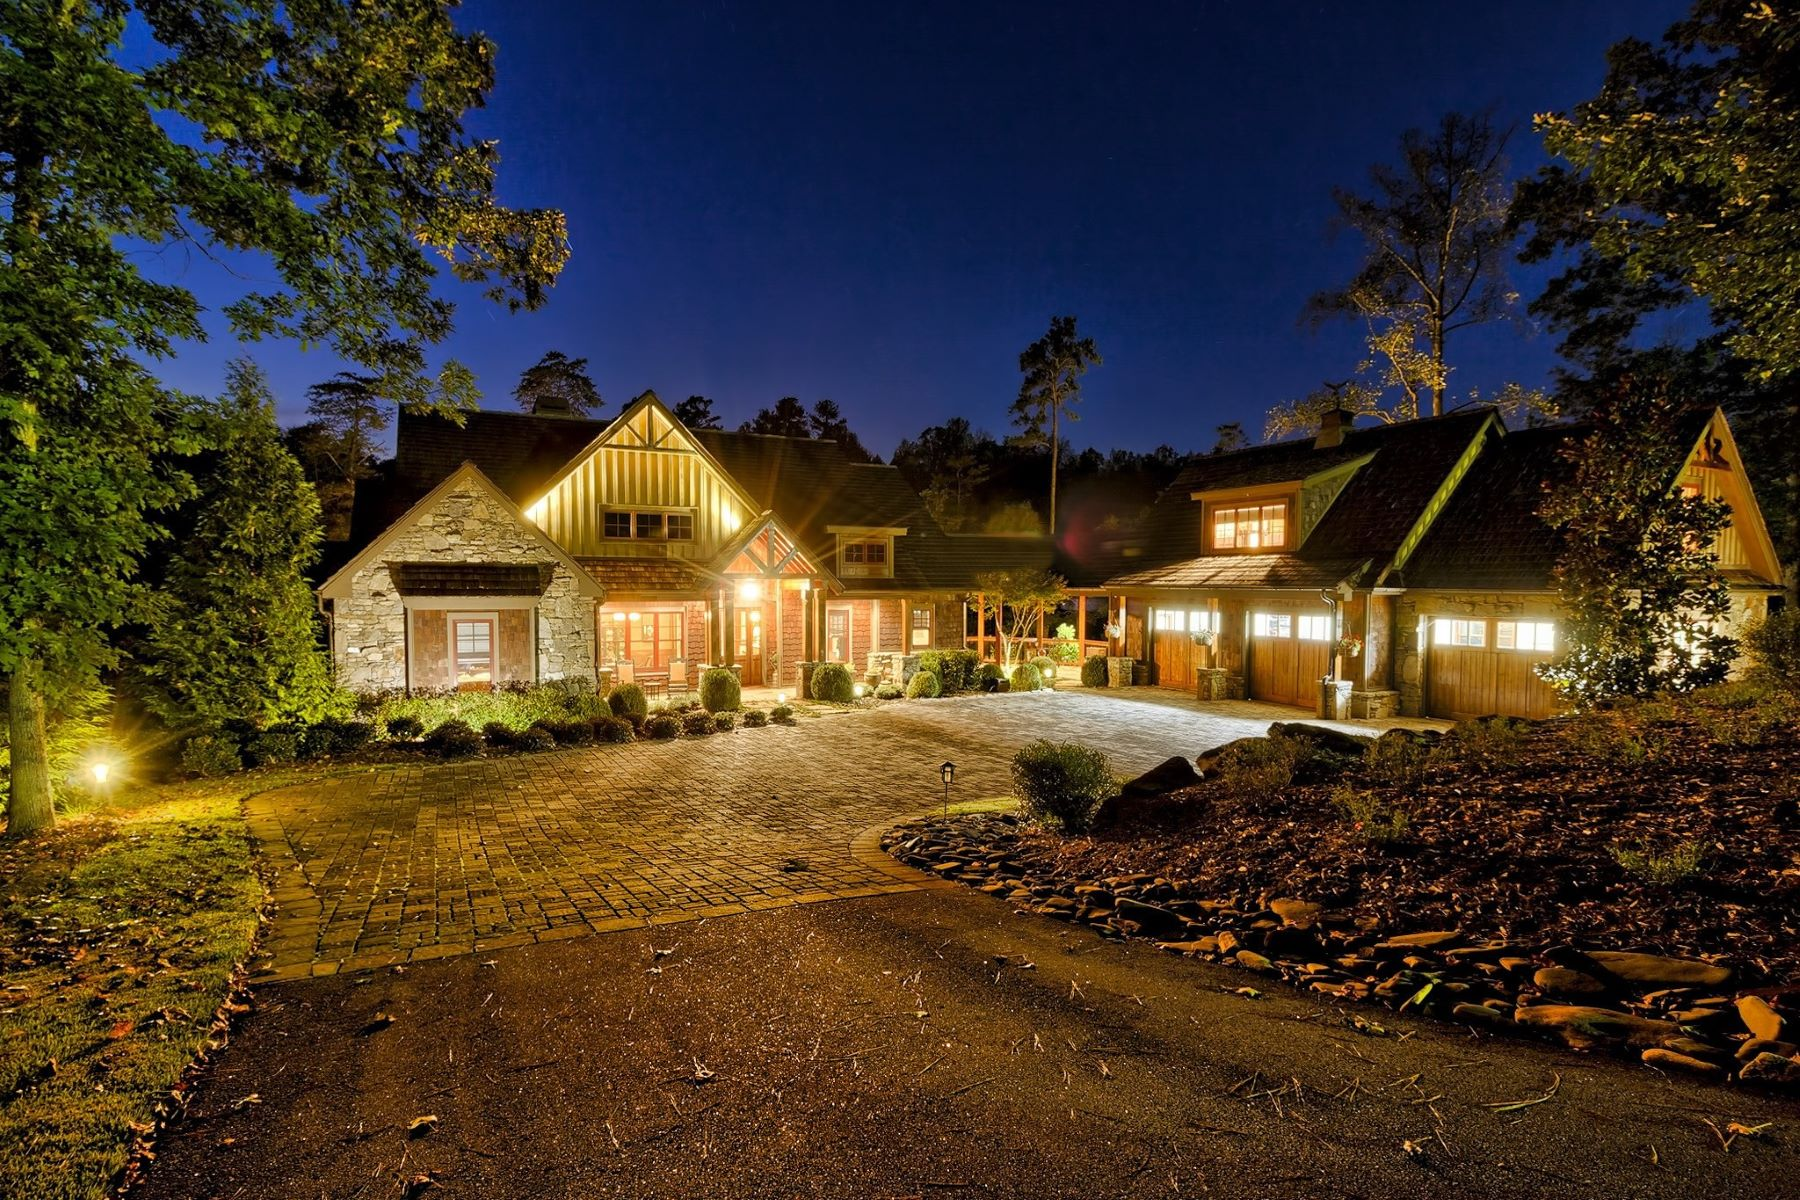 独户住宅 为 销售 在 Resort-Style Lake Home 308 Crooked Rock Ln, The Reserve At Lake Keowee, Sunset, 南卡罗来纳州, 29685 美国